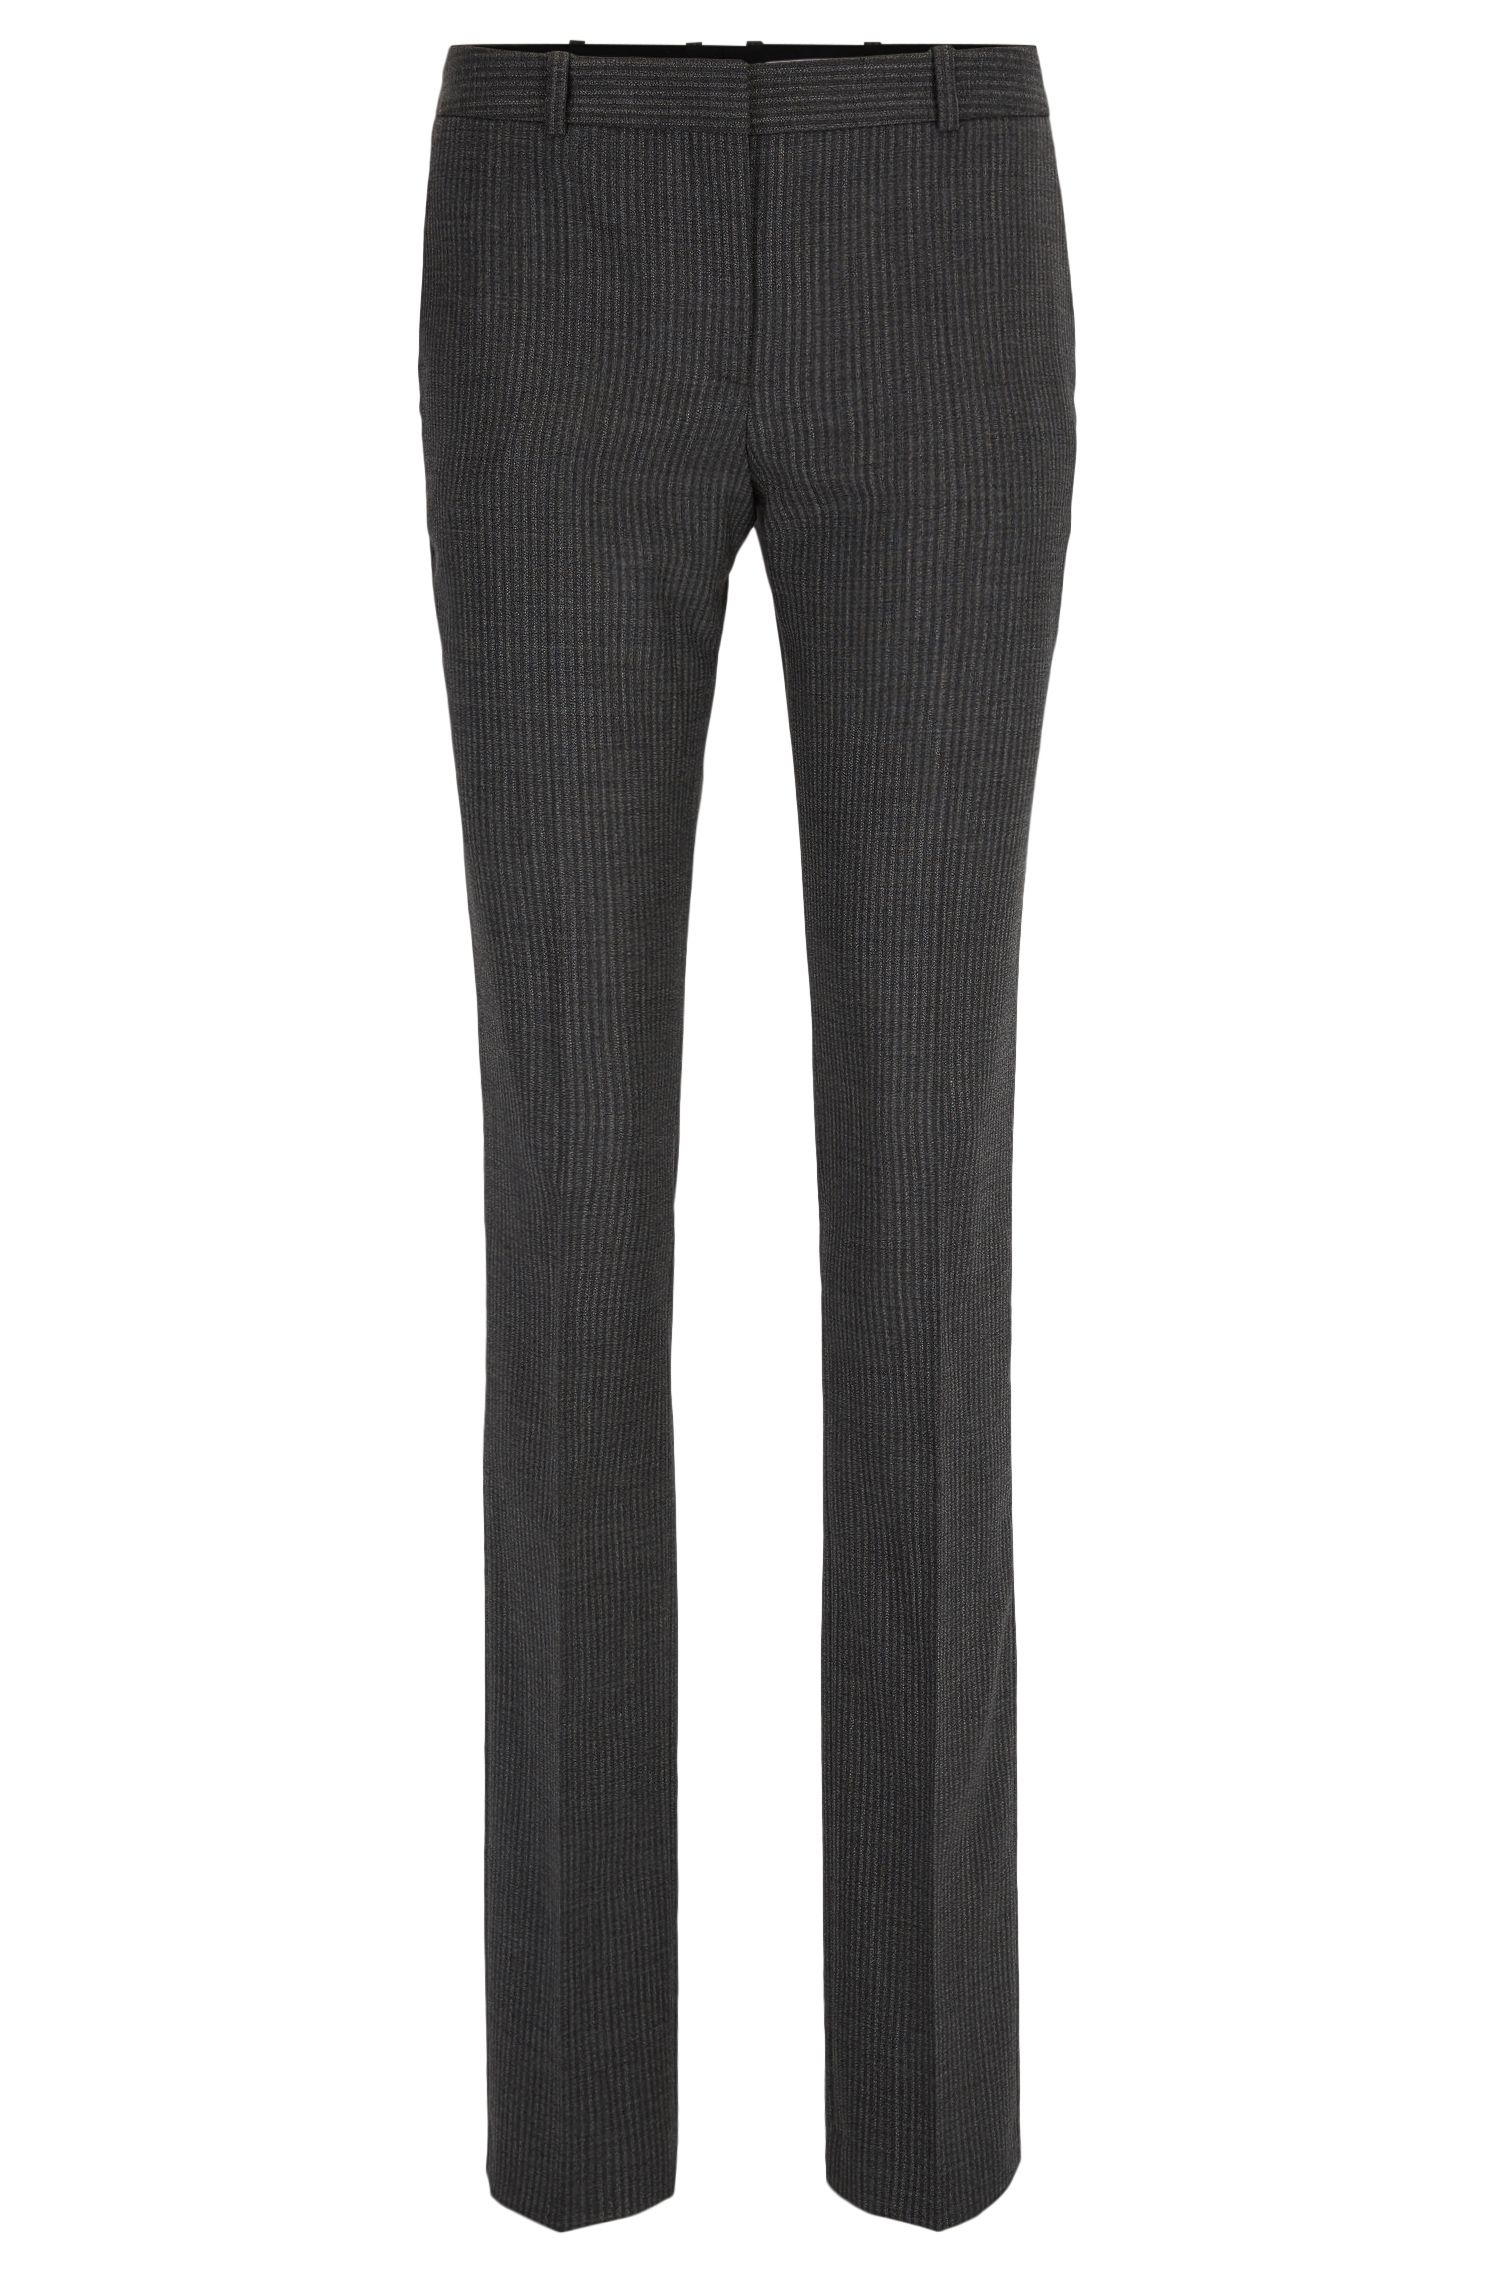 Pinstriped Stretch Virgin Wool Blend Pant | Titana